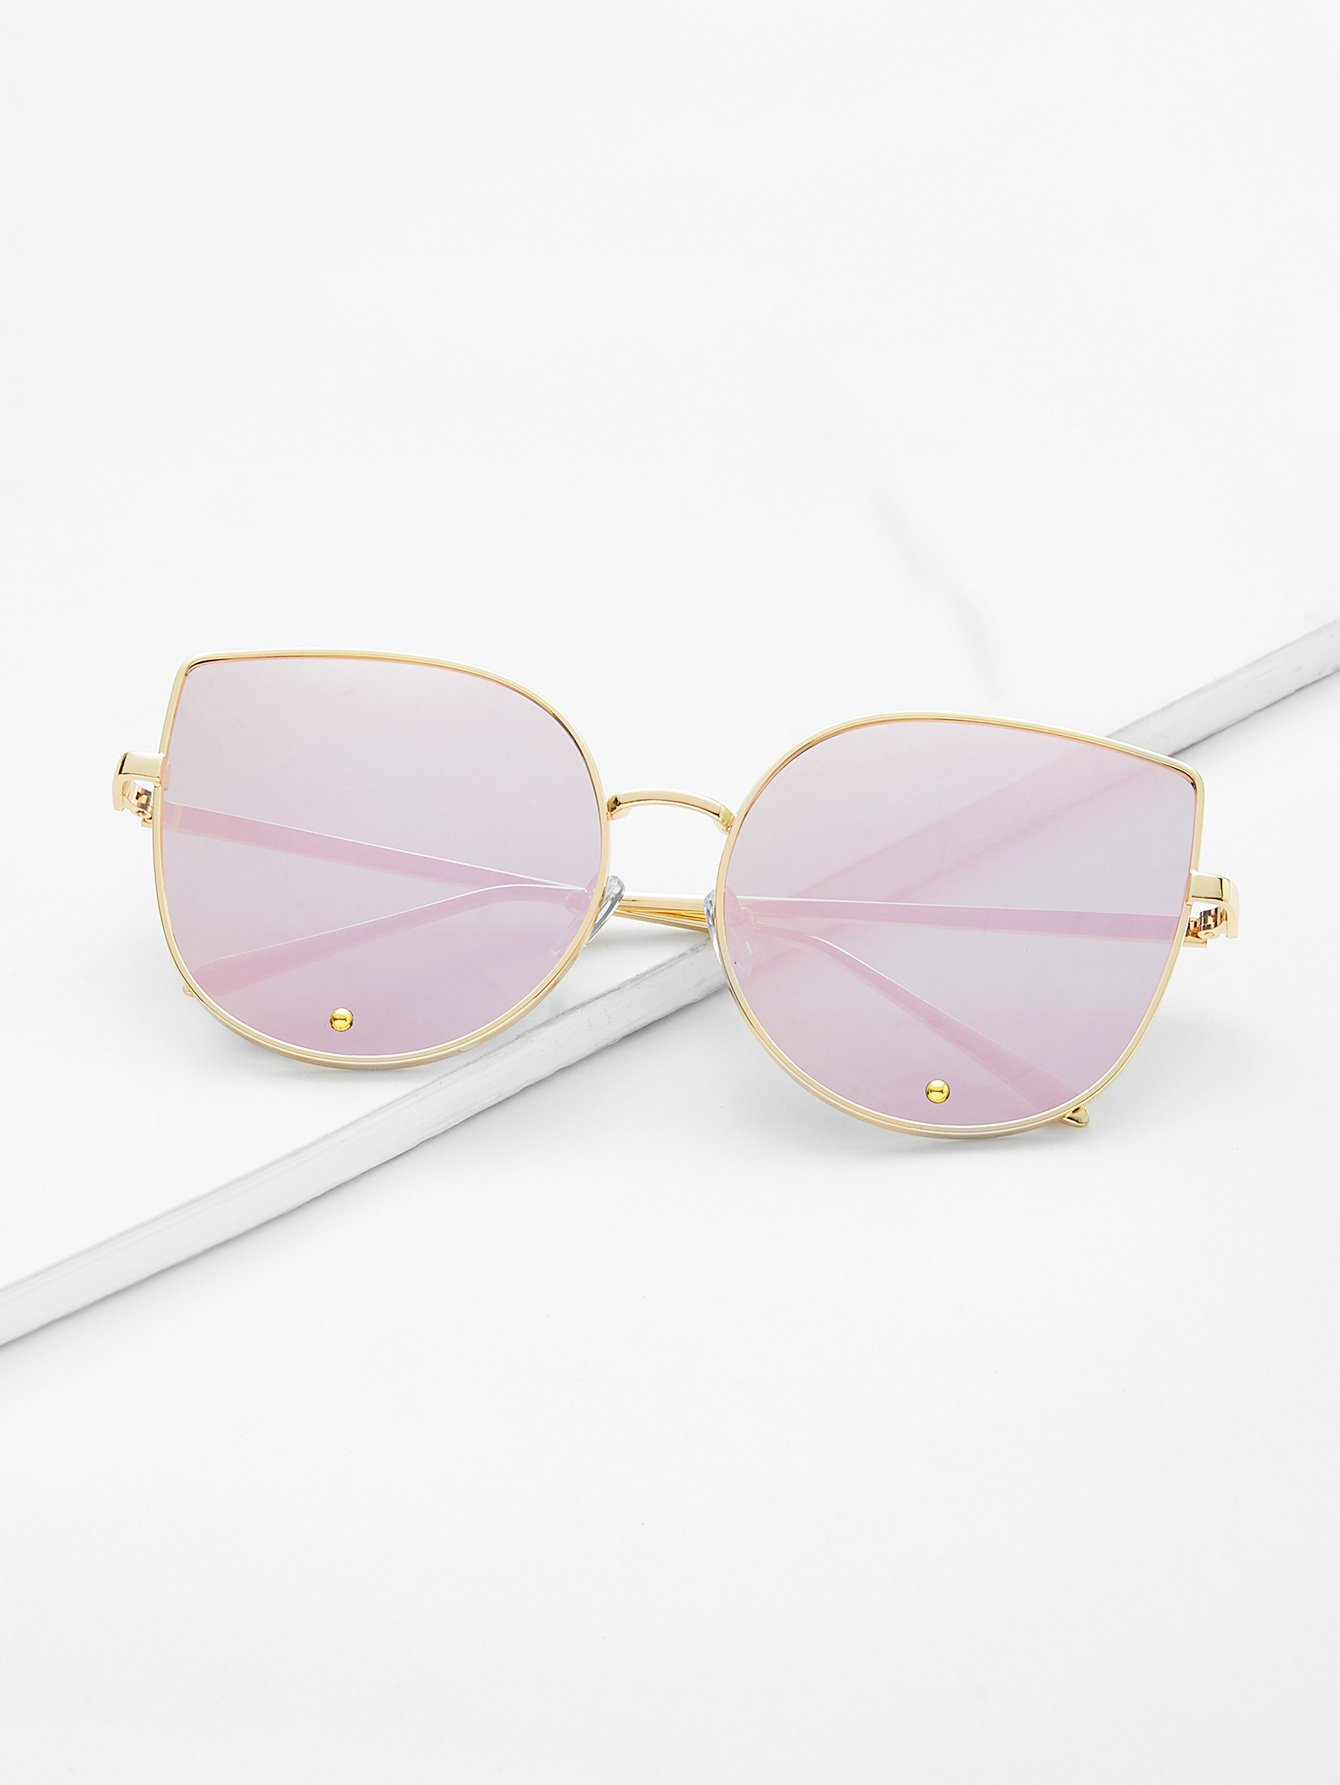 Gold Frame Pink Cat Eye Stylish Sunglasses stylish cat ears round sunglasses